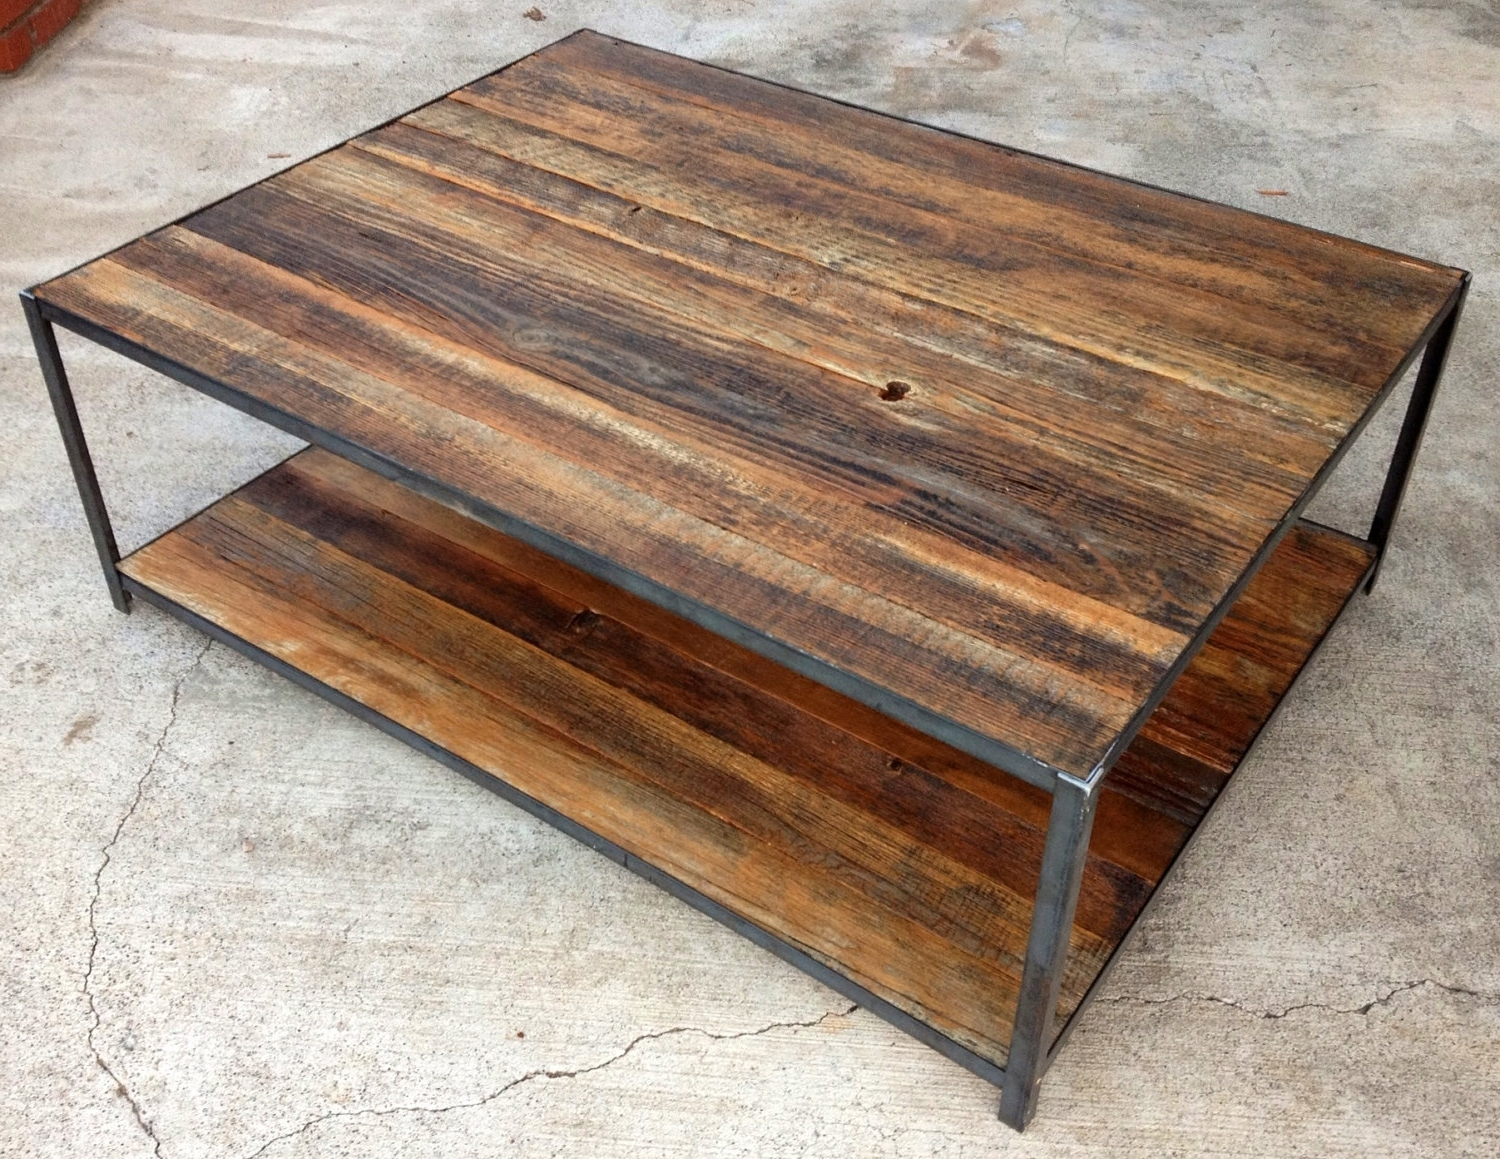 Best Reclaimed Wood Coffee Table Diy 53 On Home Design Pertaining To Fashionable Reclaimed Pine & Iron Coffee Tables (View 9 of 20)